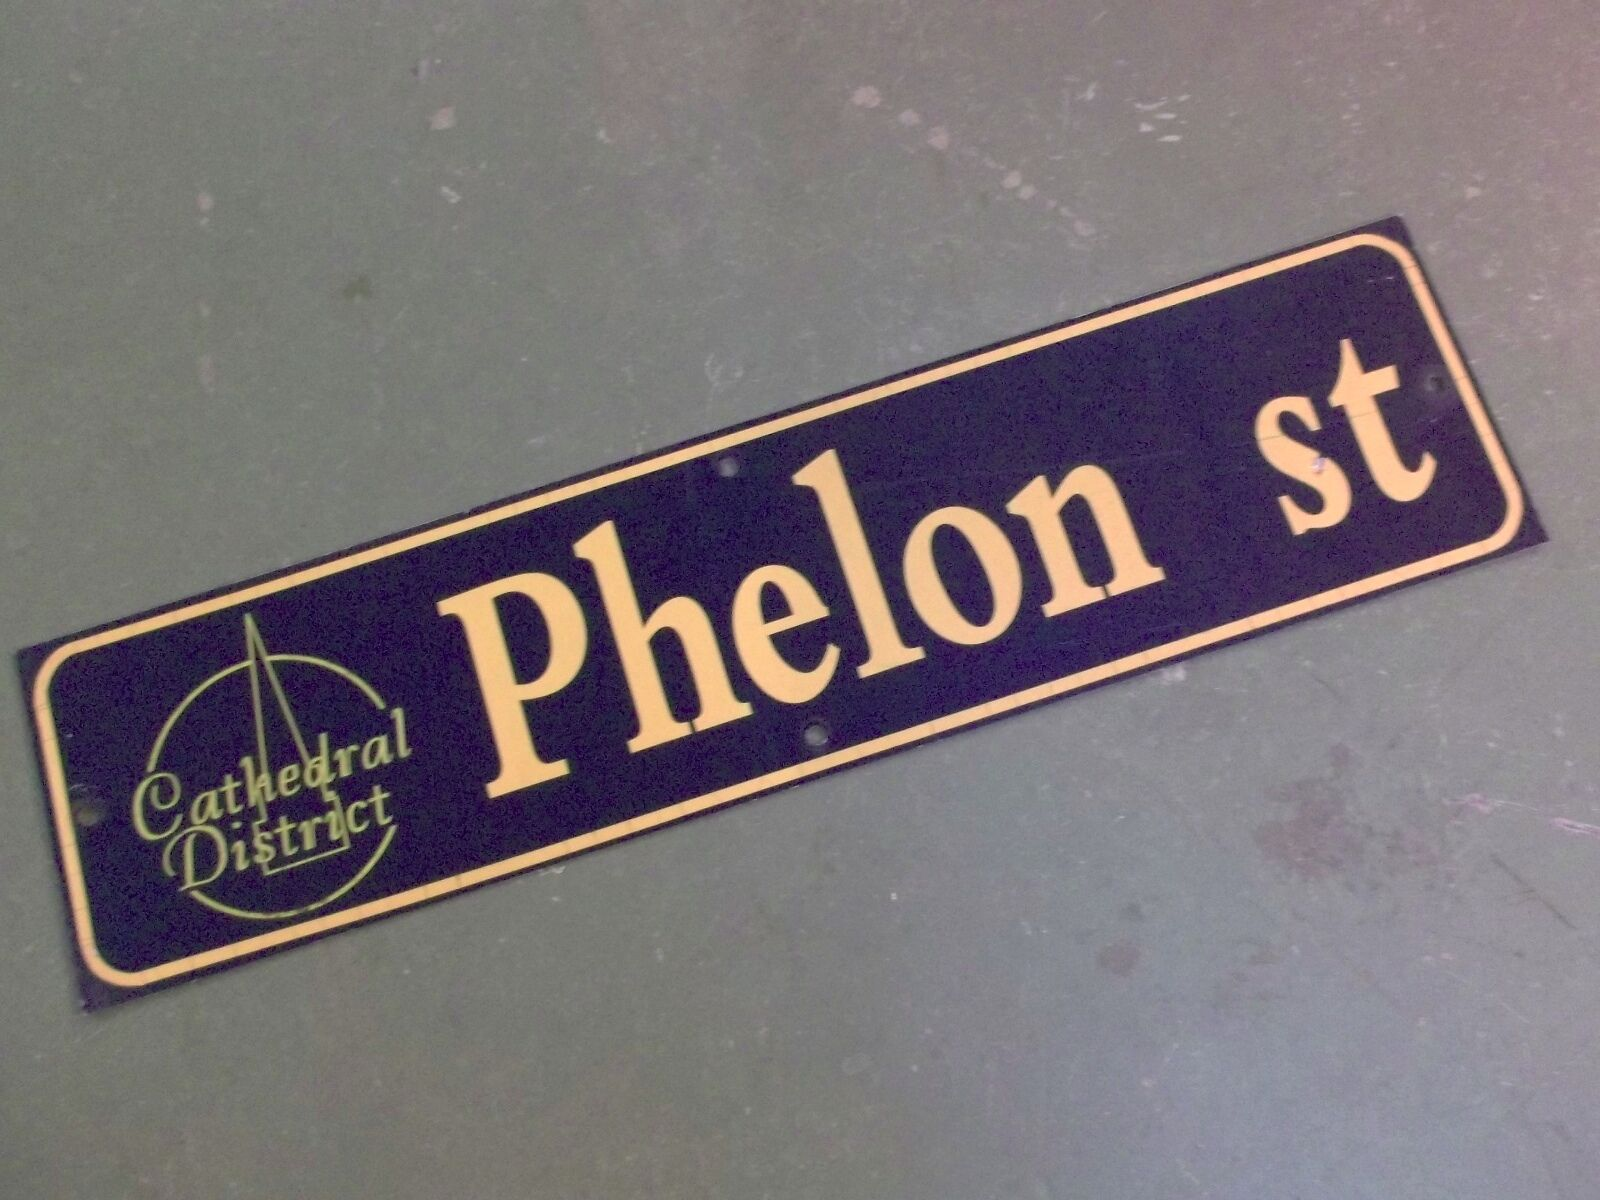 "Vintage PHELON ST Cathedral District Street Sign 36"" X 9"" - GOLD on NAVY Ground"